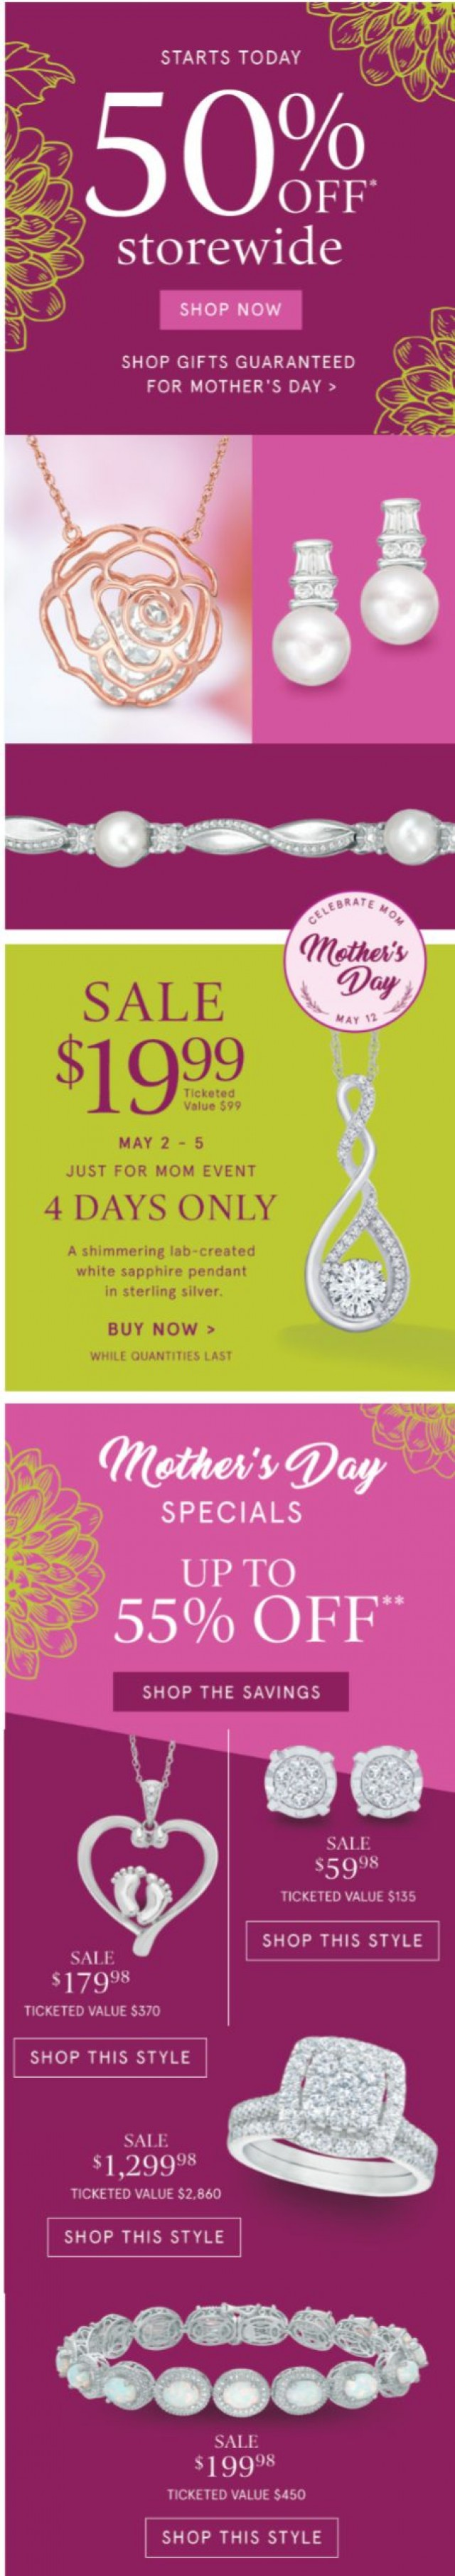 Coupon for: Zales Outlet - 50% Off Storewide Starts TODAY | Time to Spoil Mom!